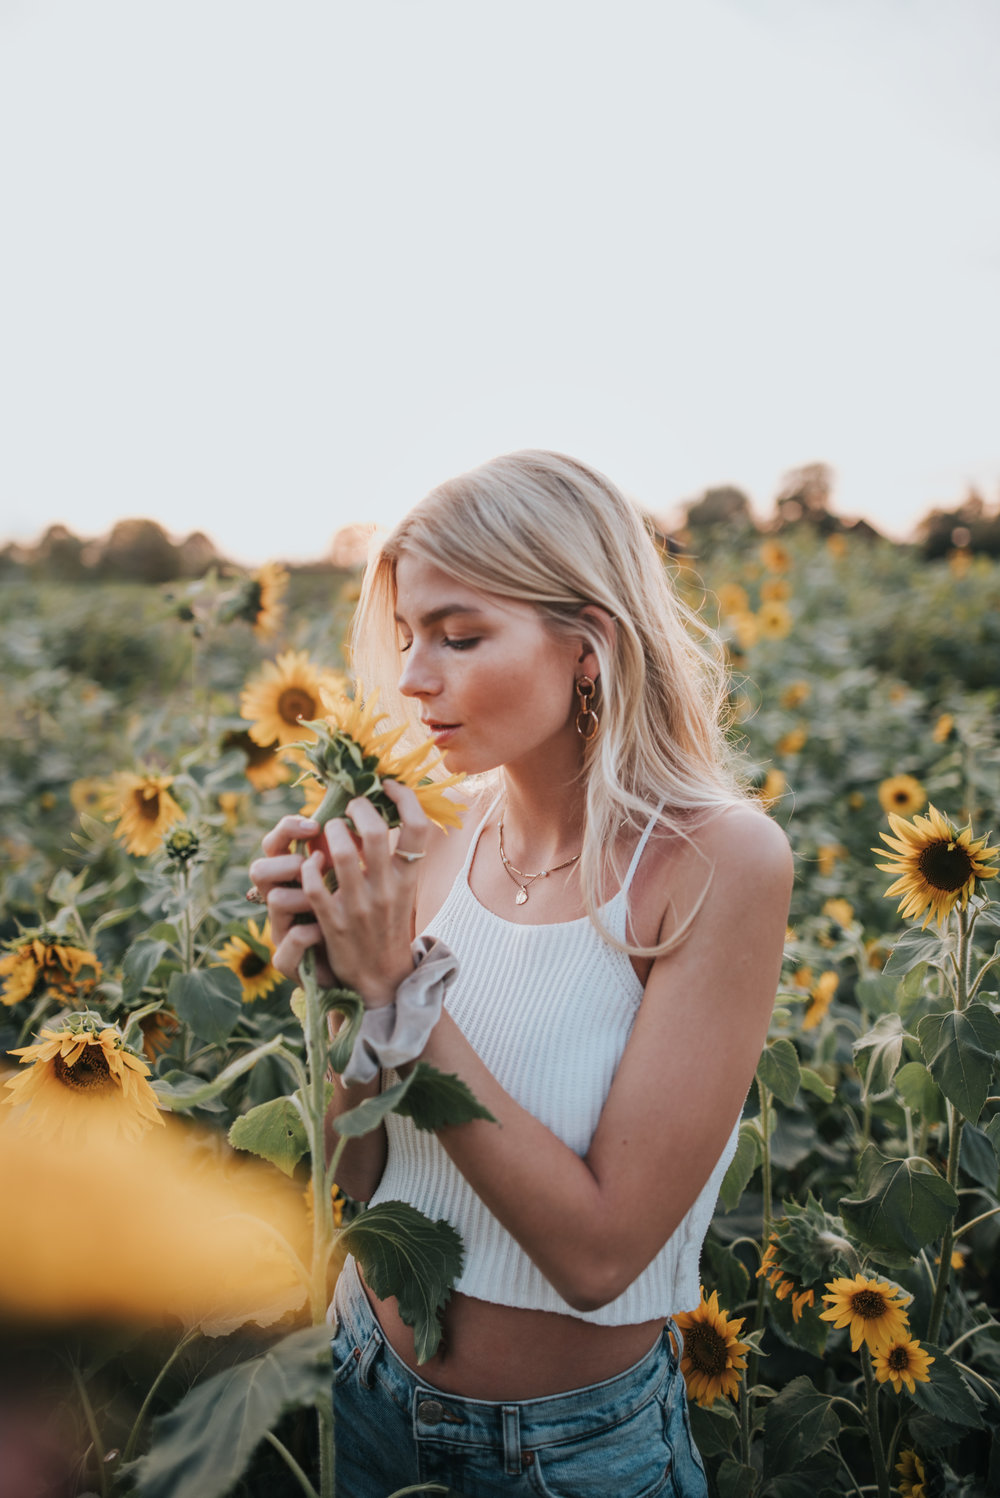 gretacaptures | photography | münster | sunflowers | golden hour shooting | summer